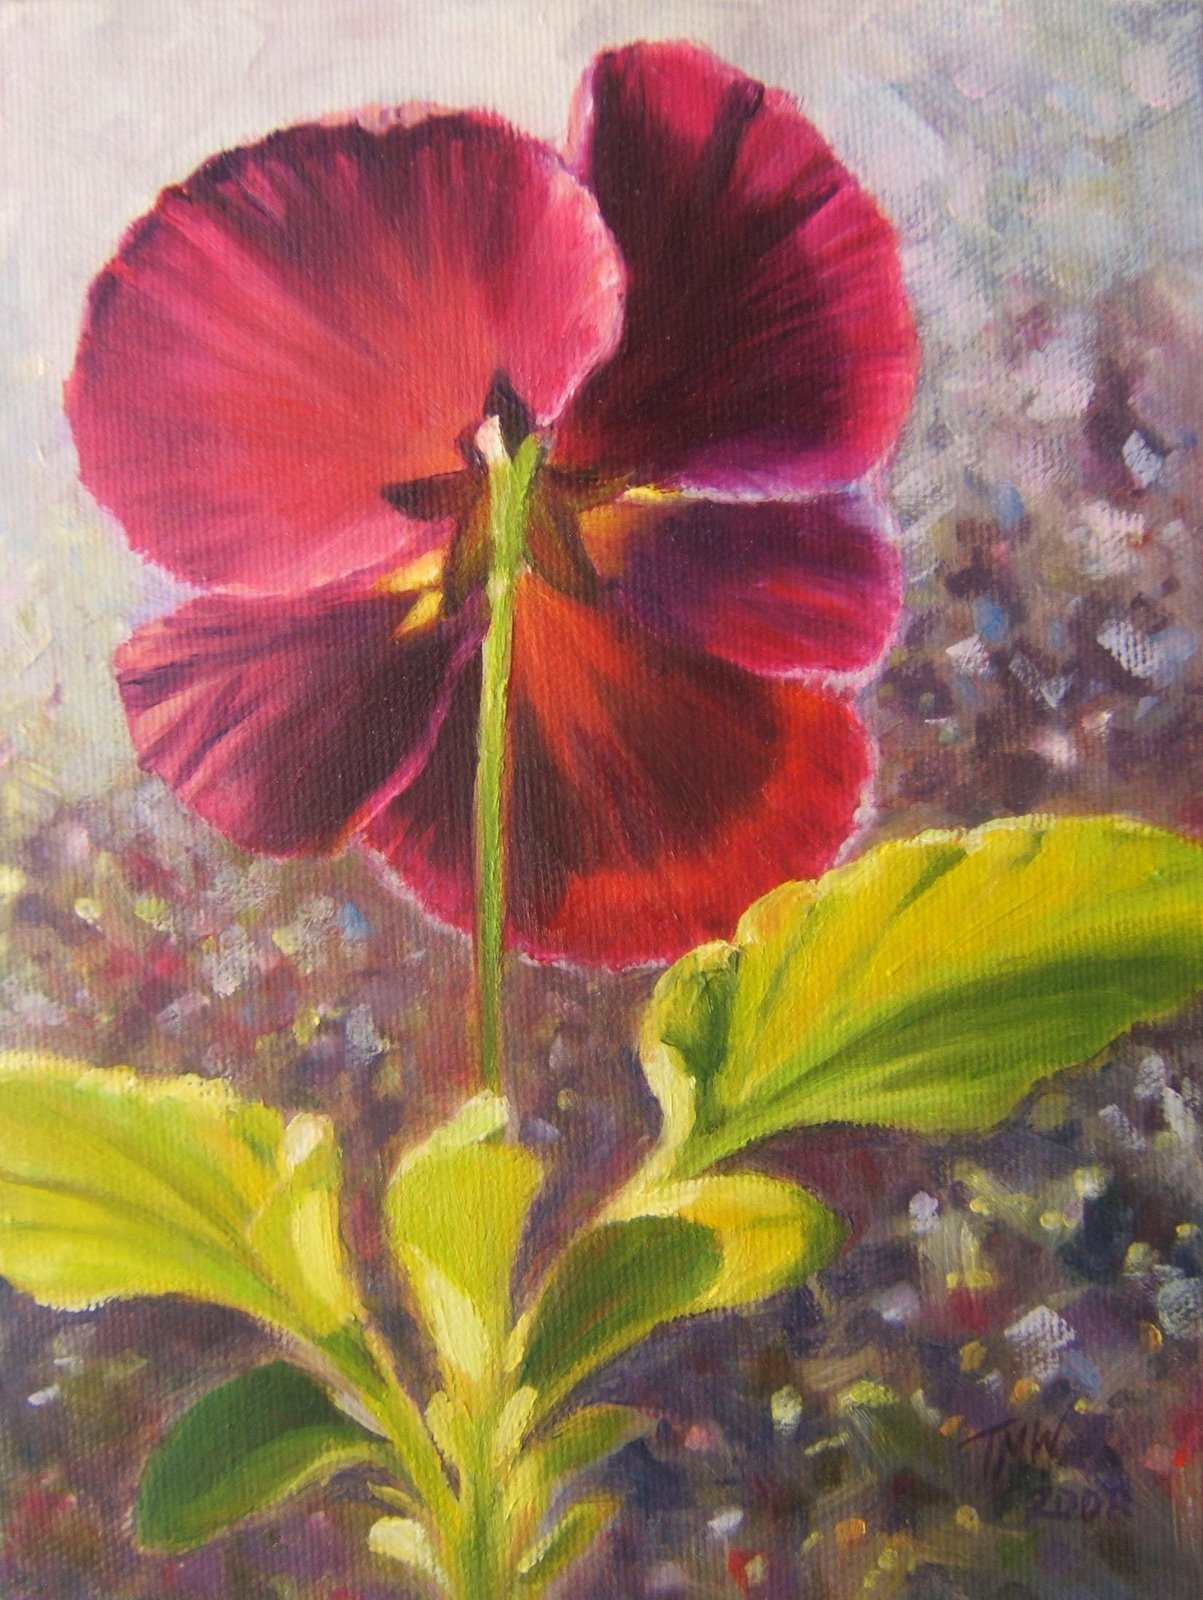 """8""""x 6"""" oil on canvas, copyright 2008 Tina M. Welter"""